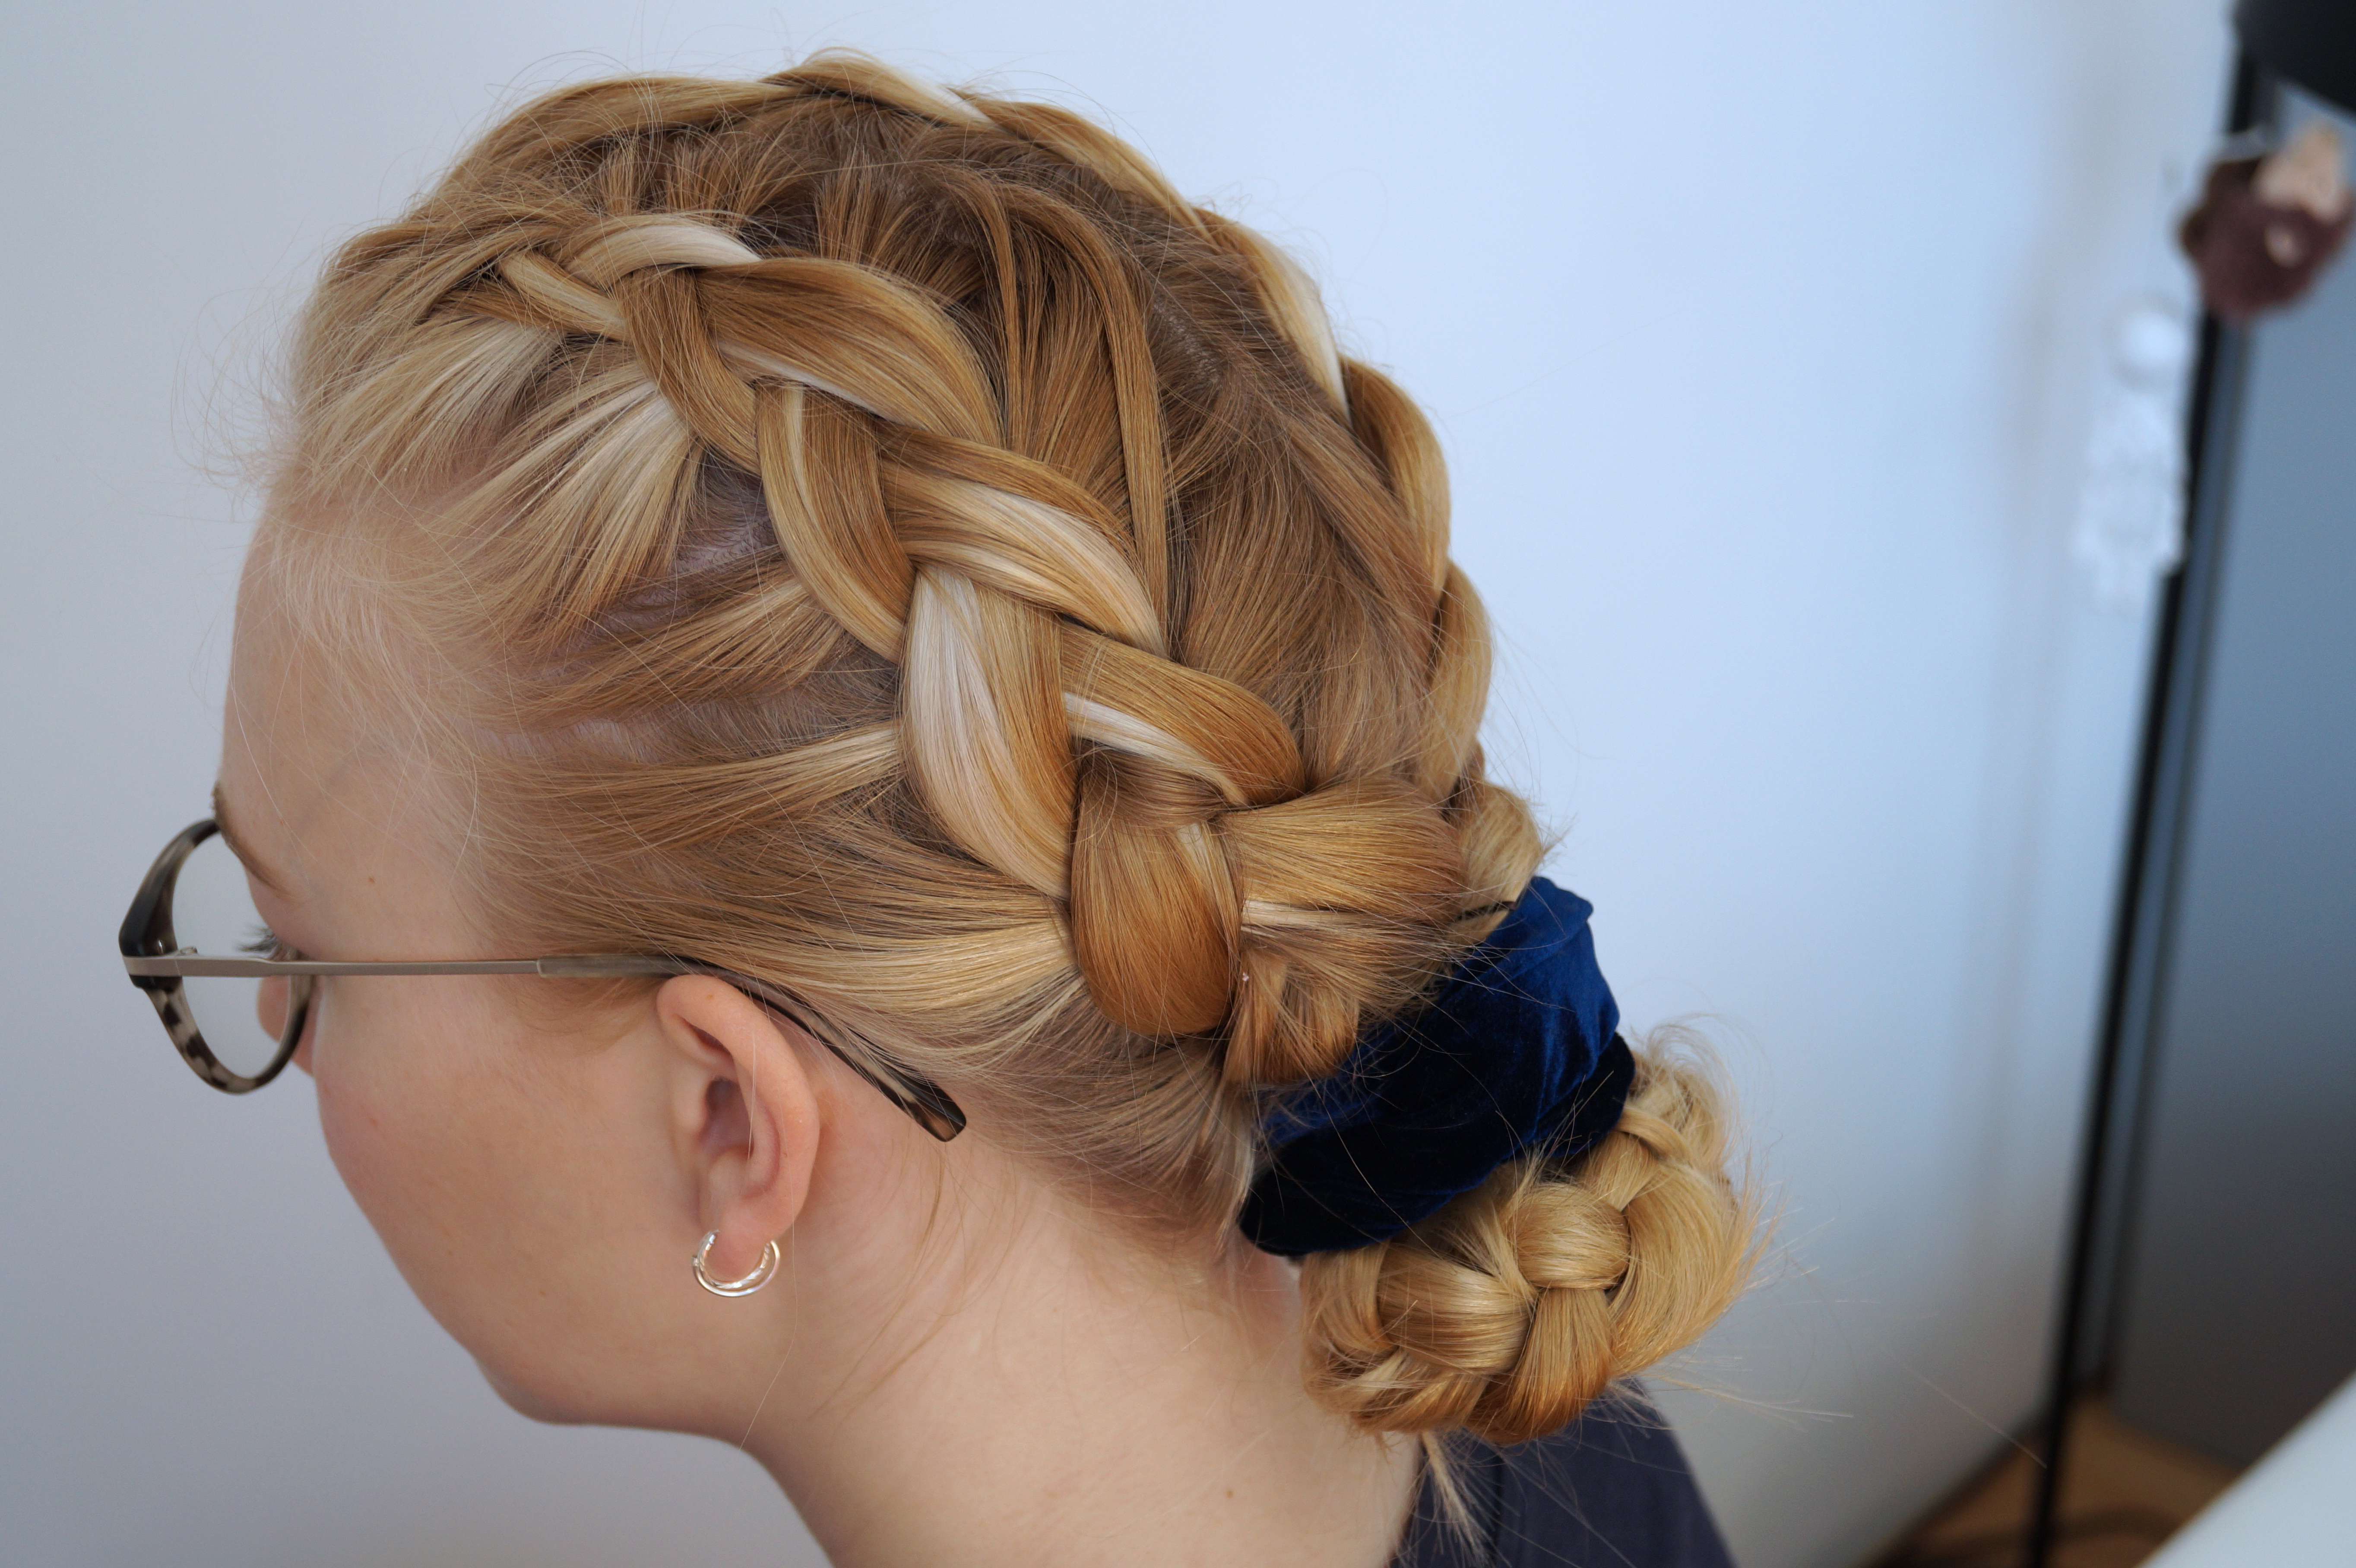 Dutch Braids #HairTutorial